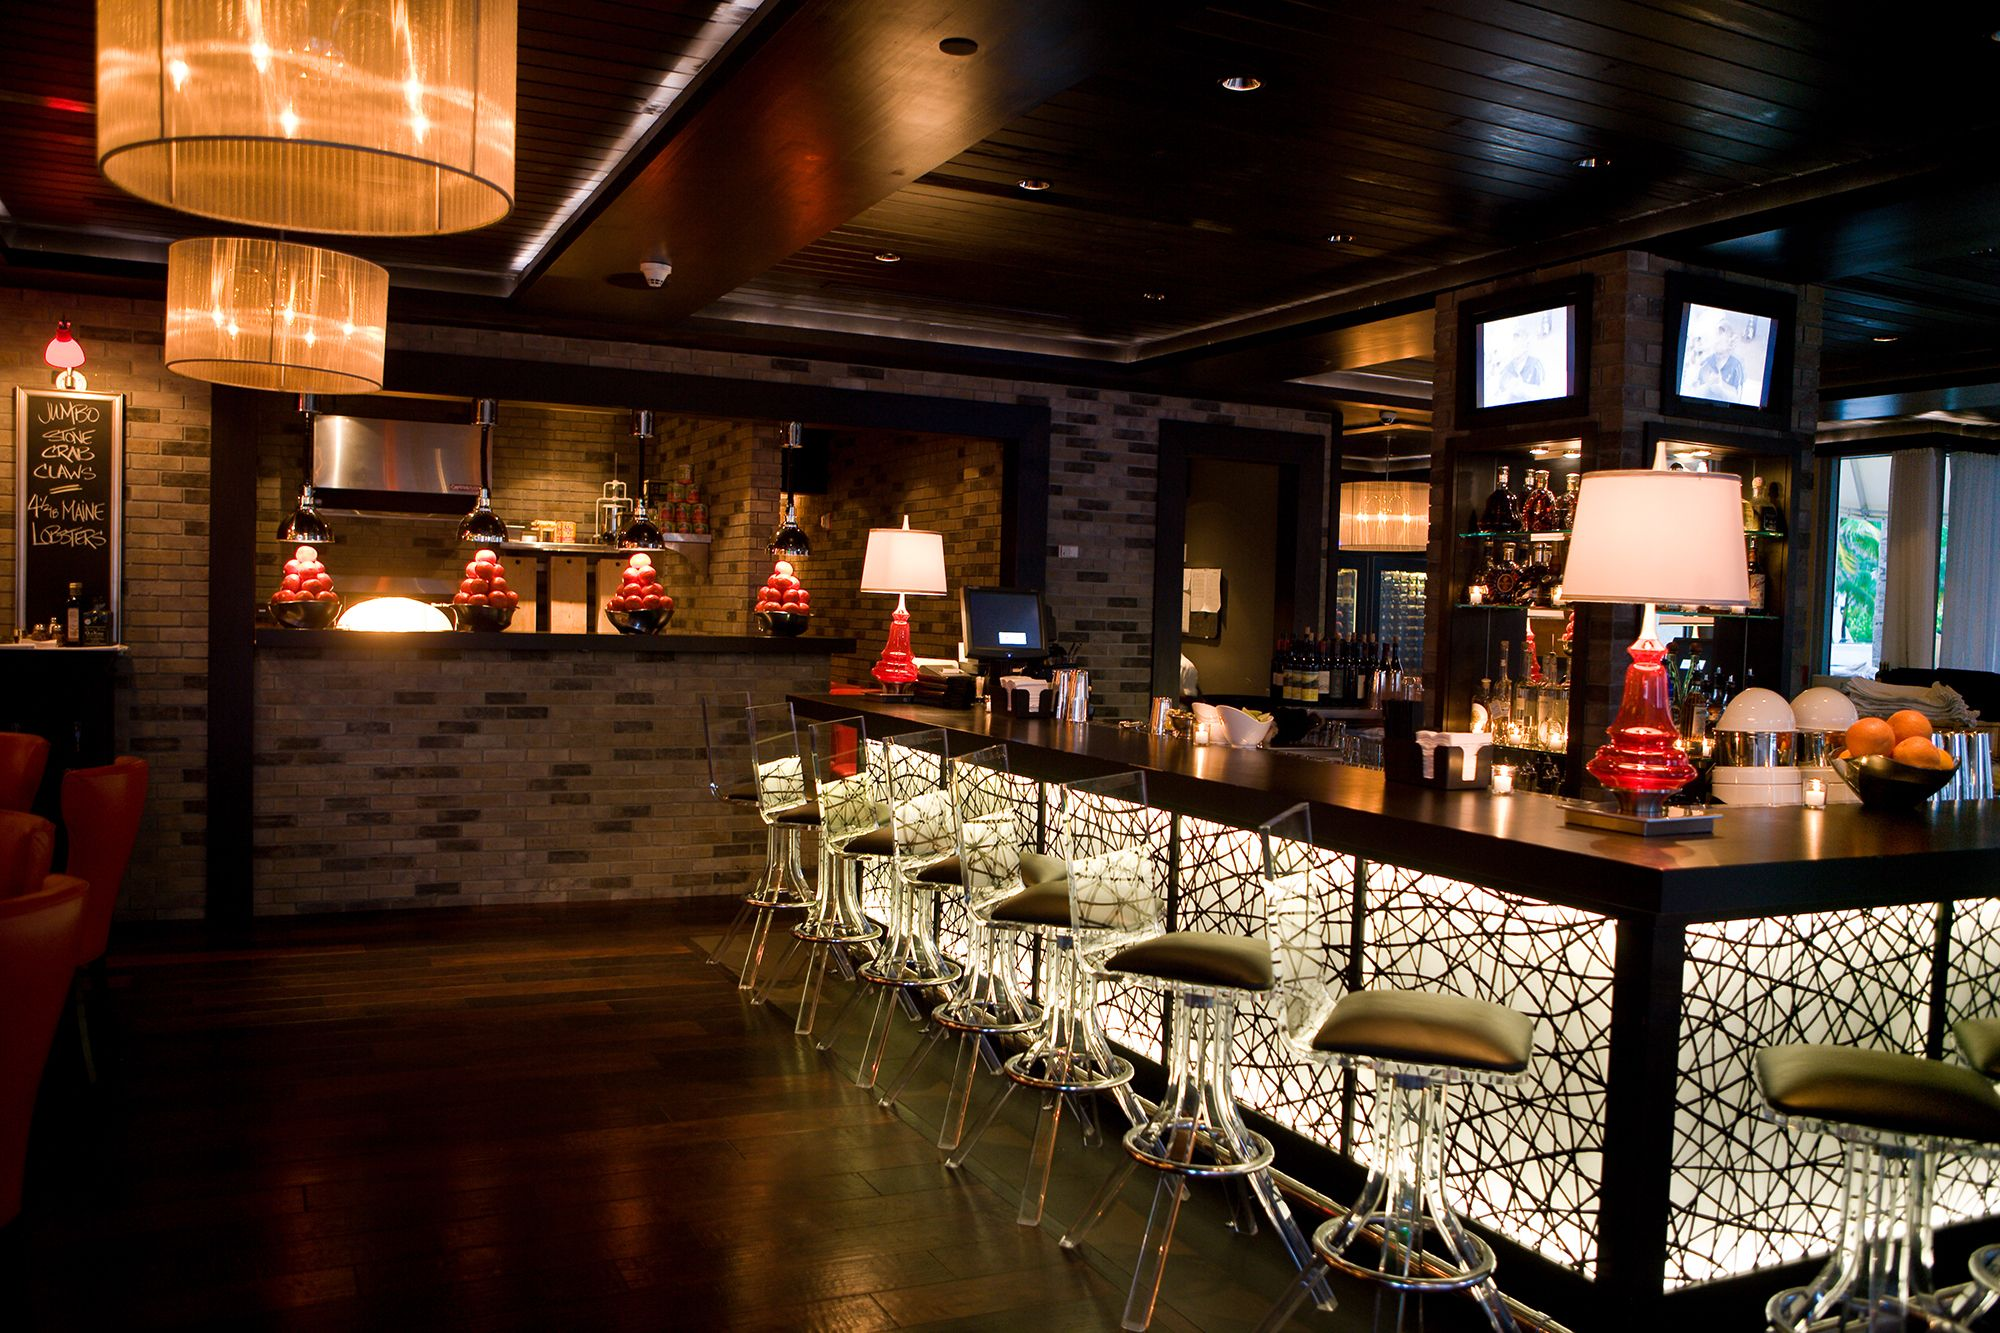 Prime 112 - Miami. the first floor is the usual steakhouse bar ...